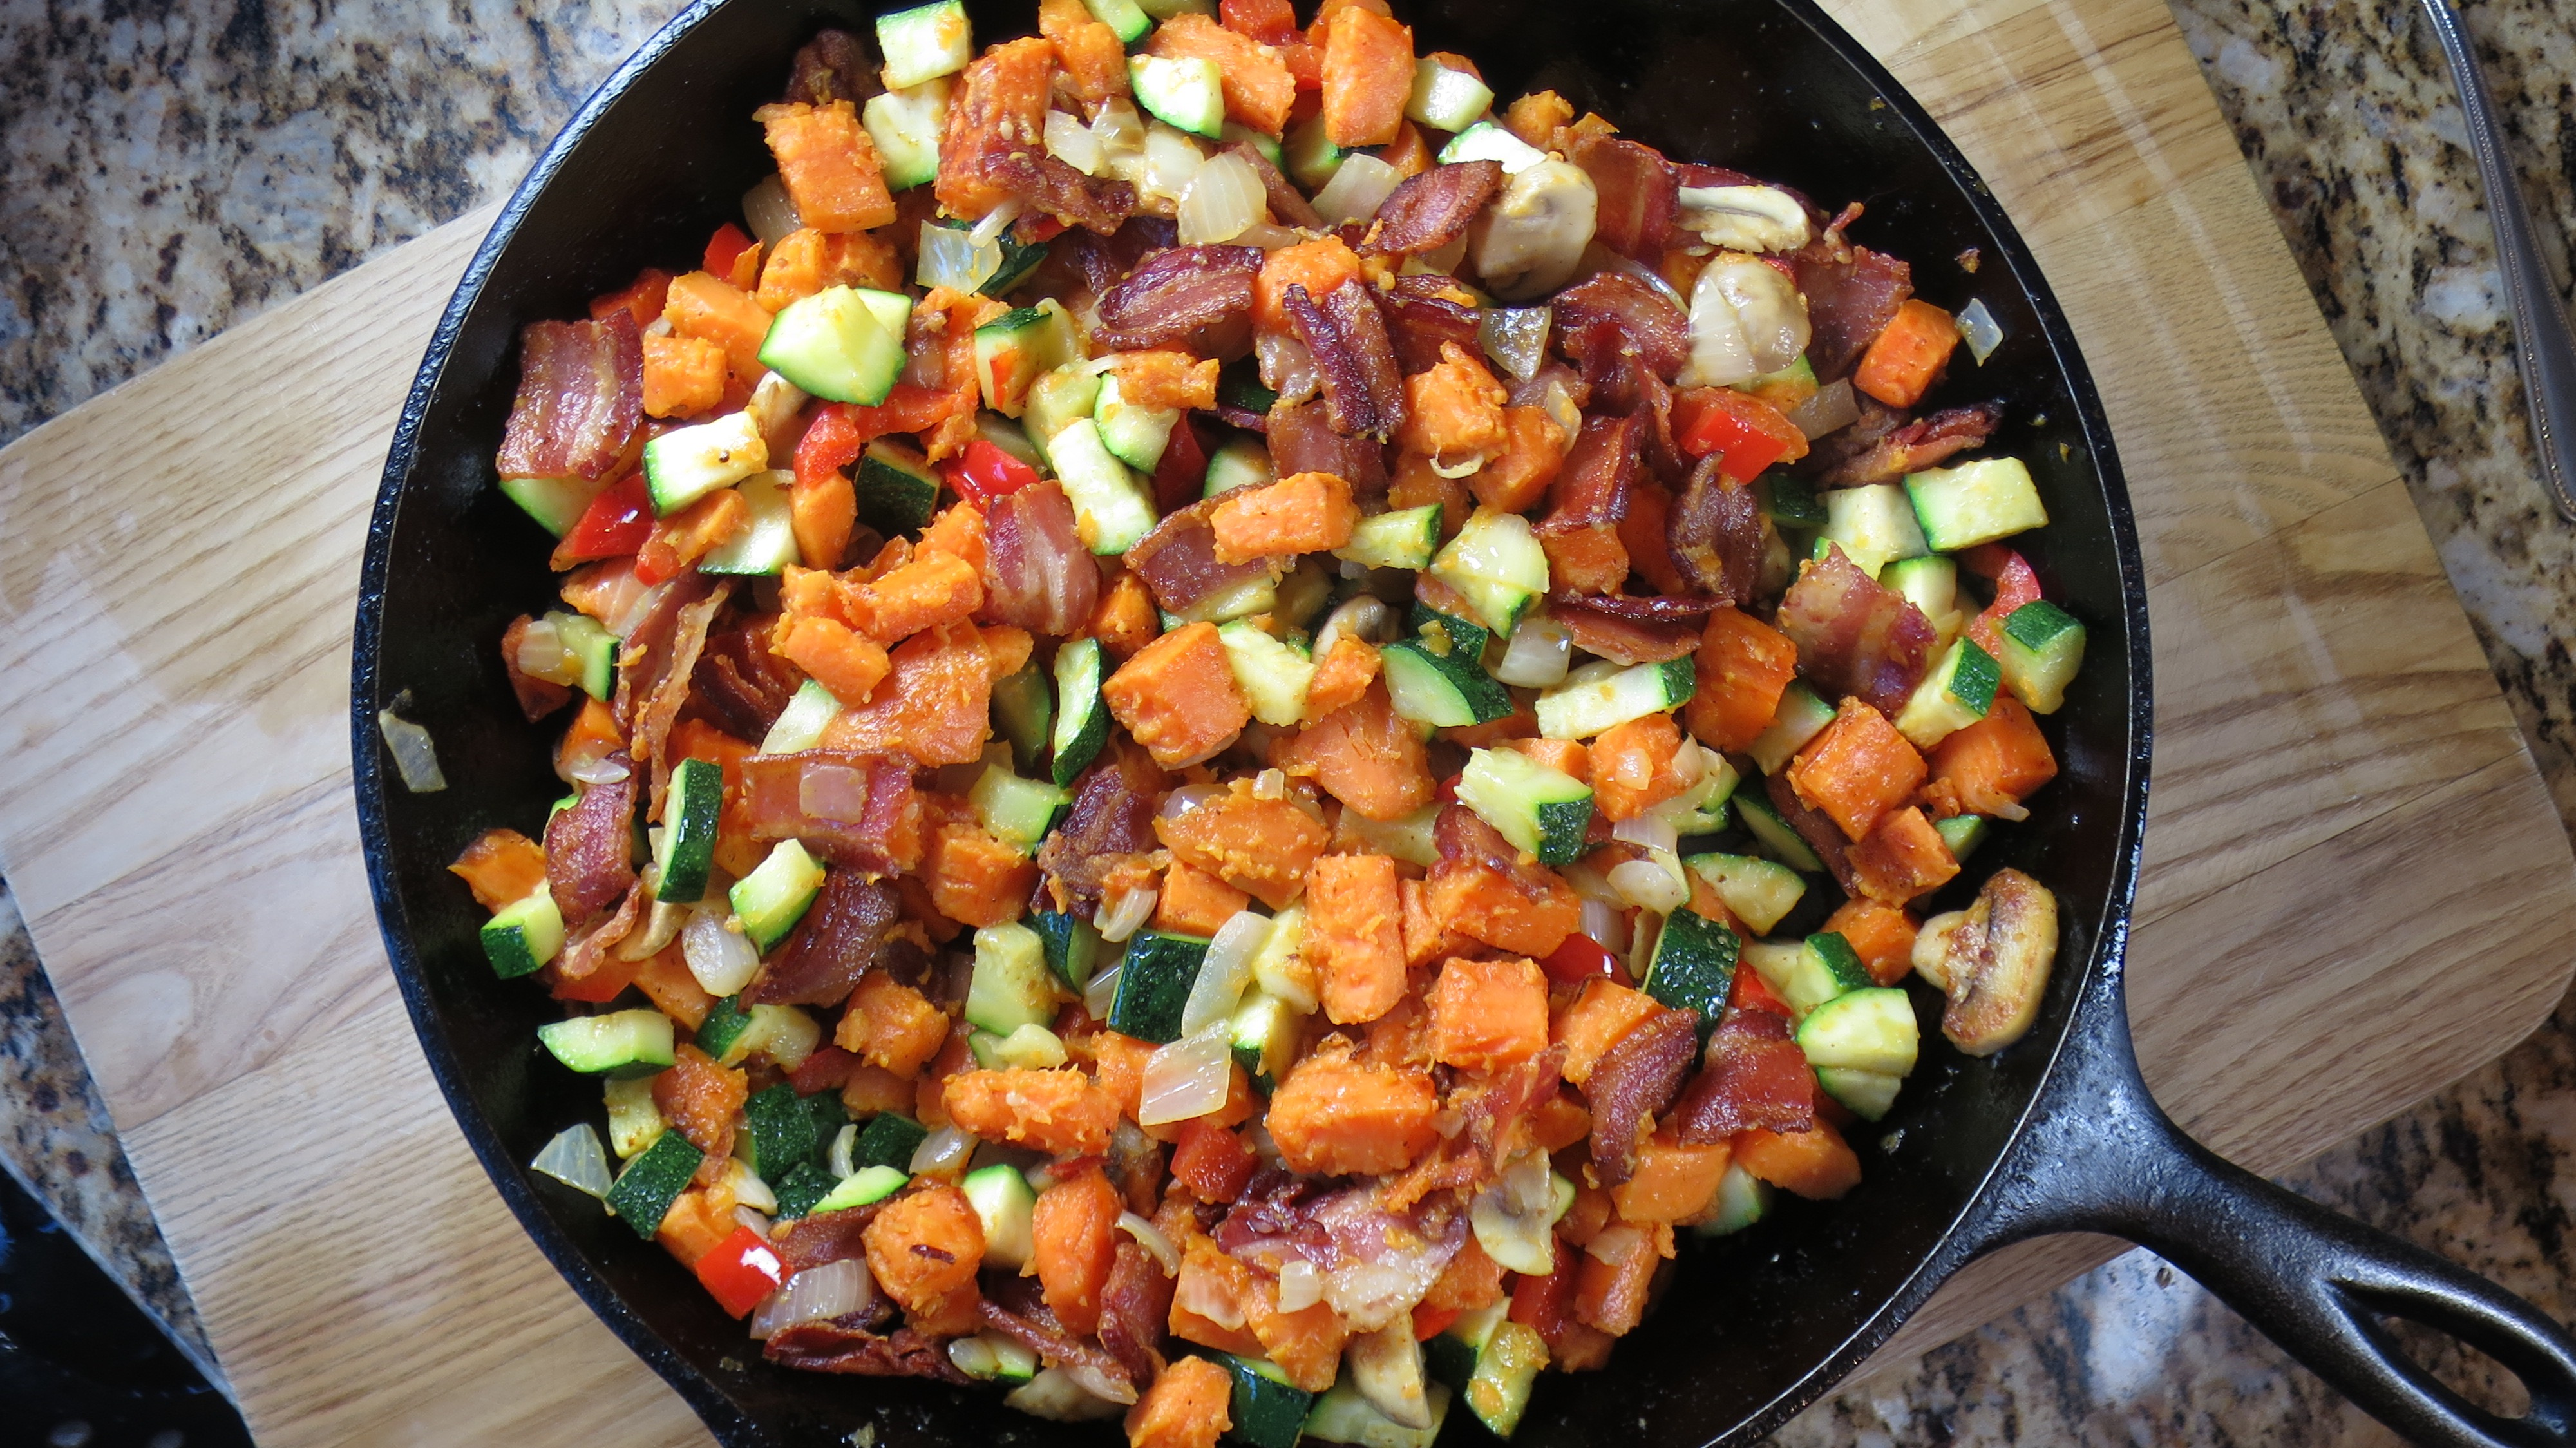 Sweet Potato, Bacon, and Egg Skillet